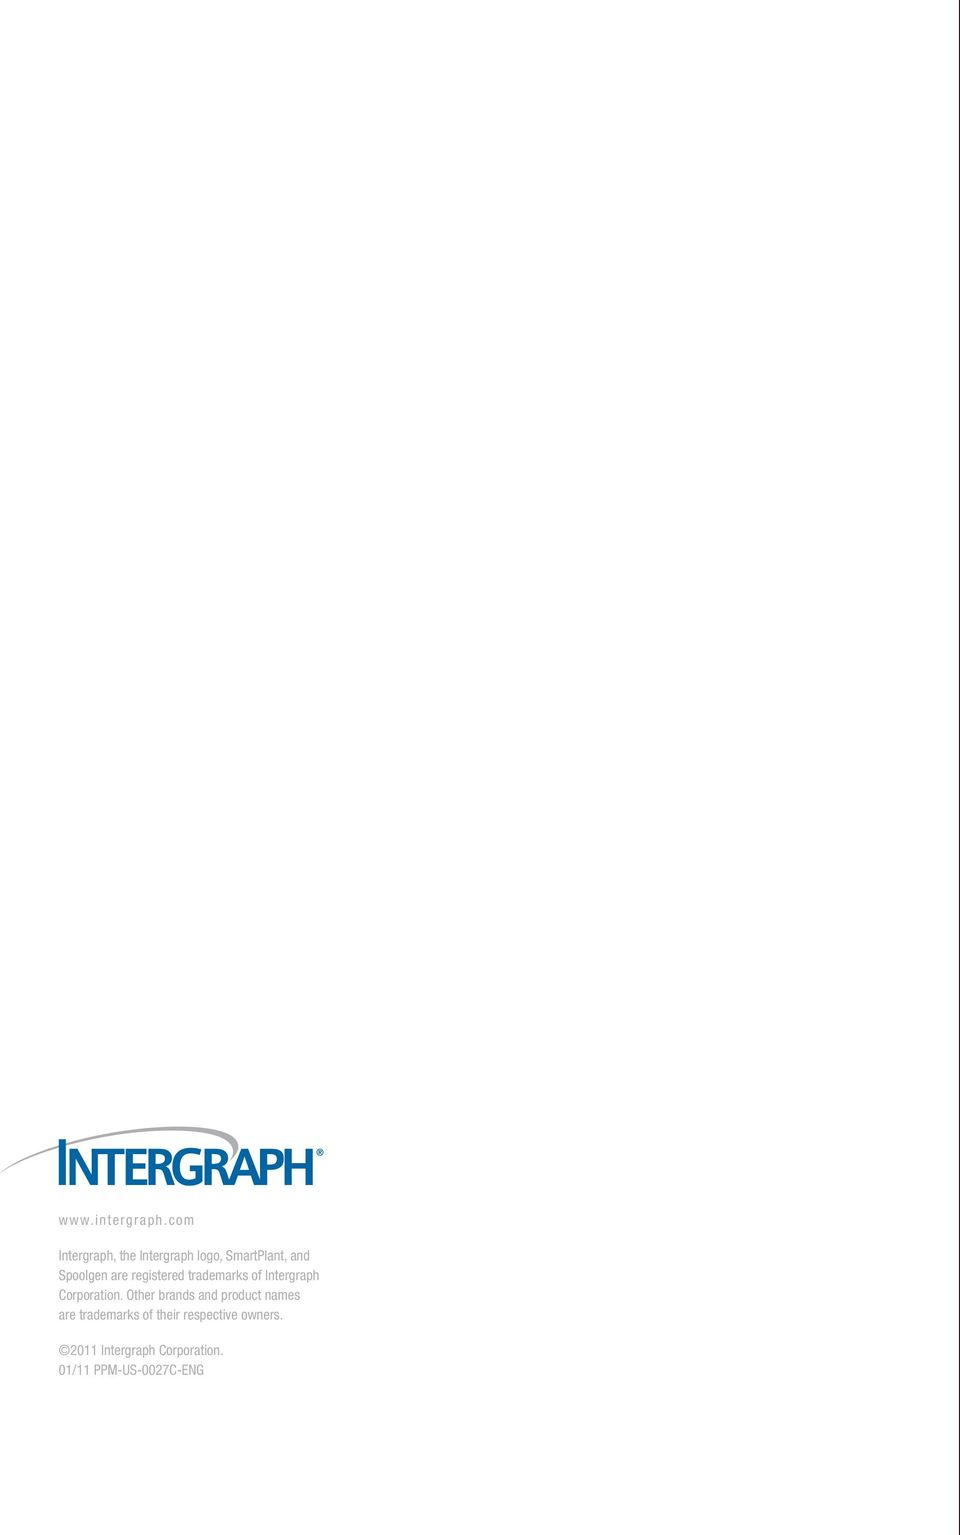 are registered trademarks of Intergraph Corporation.